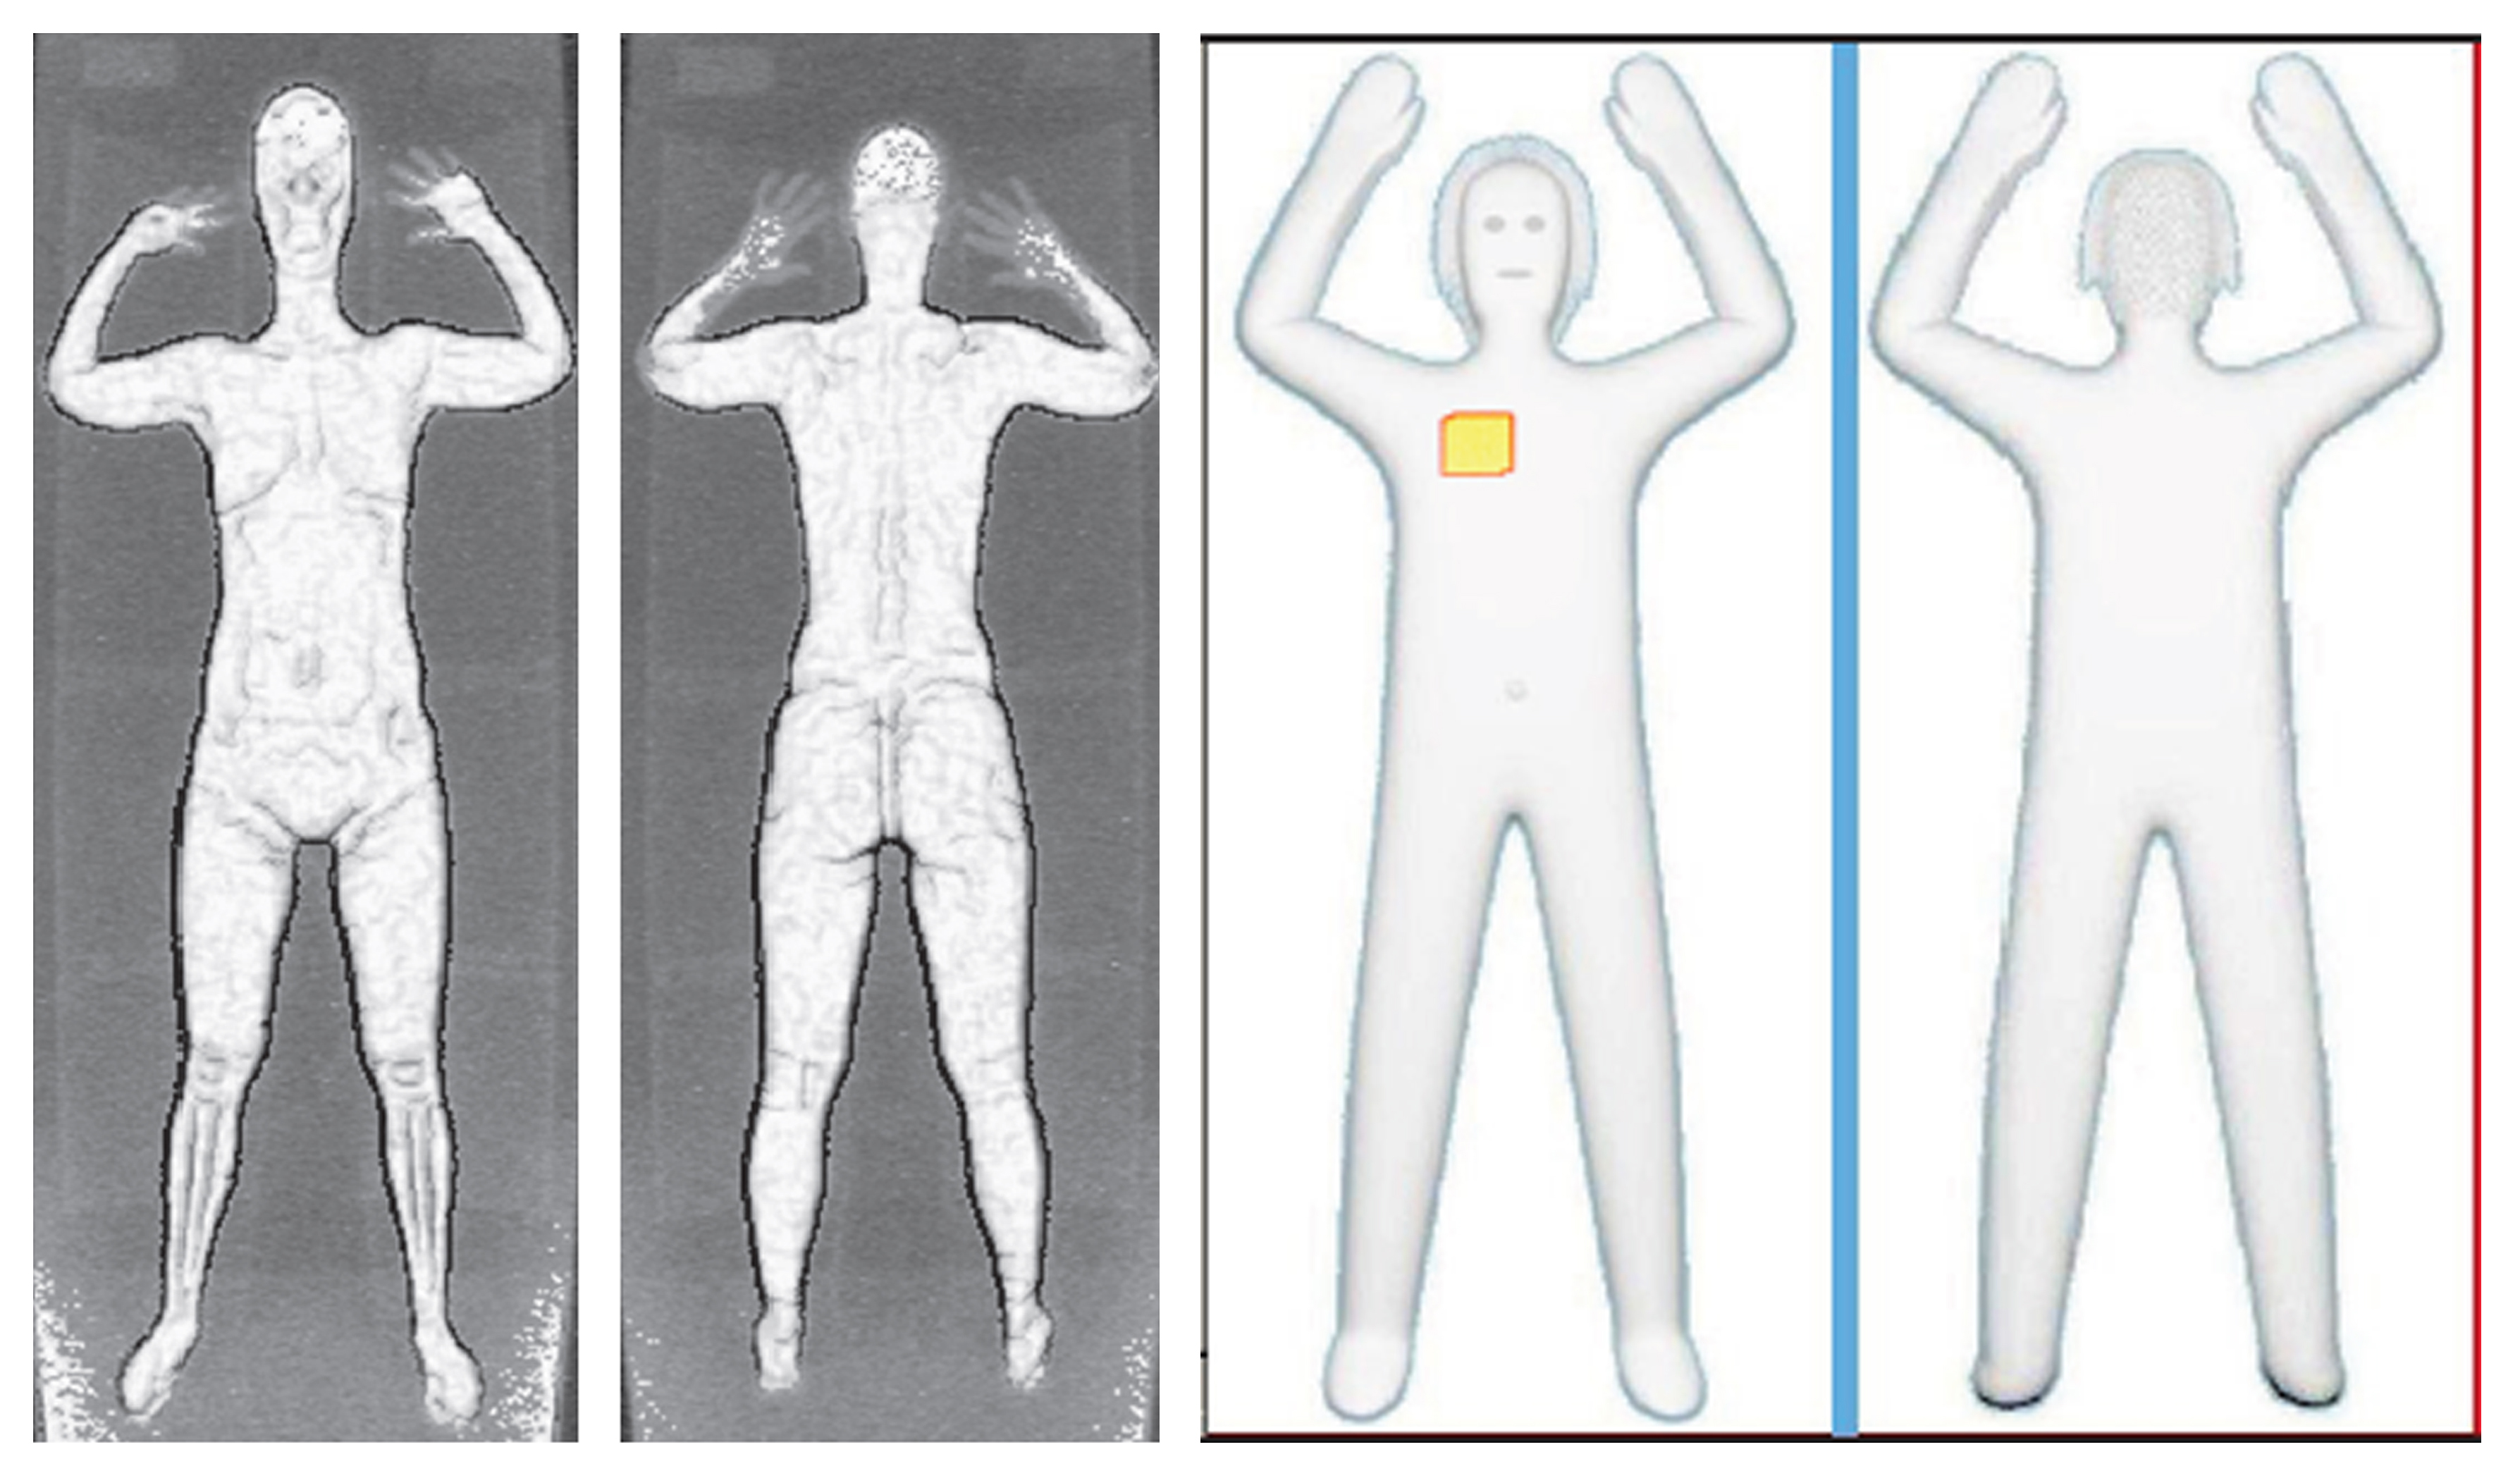 These two sets of images provided by the Transportation Security Administration are samples that show details of what TSA officers see on computer monitors when passengers pass through airport body scanners.